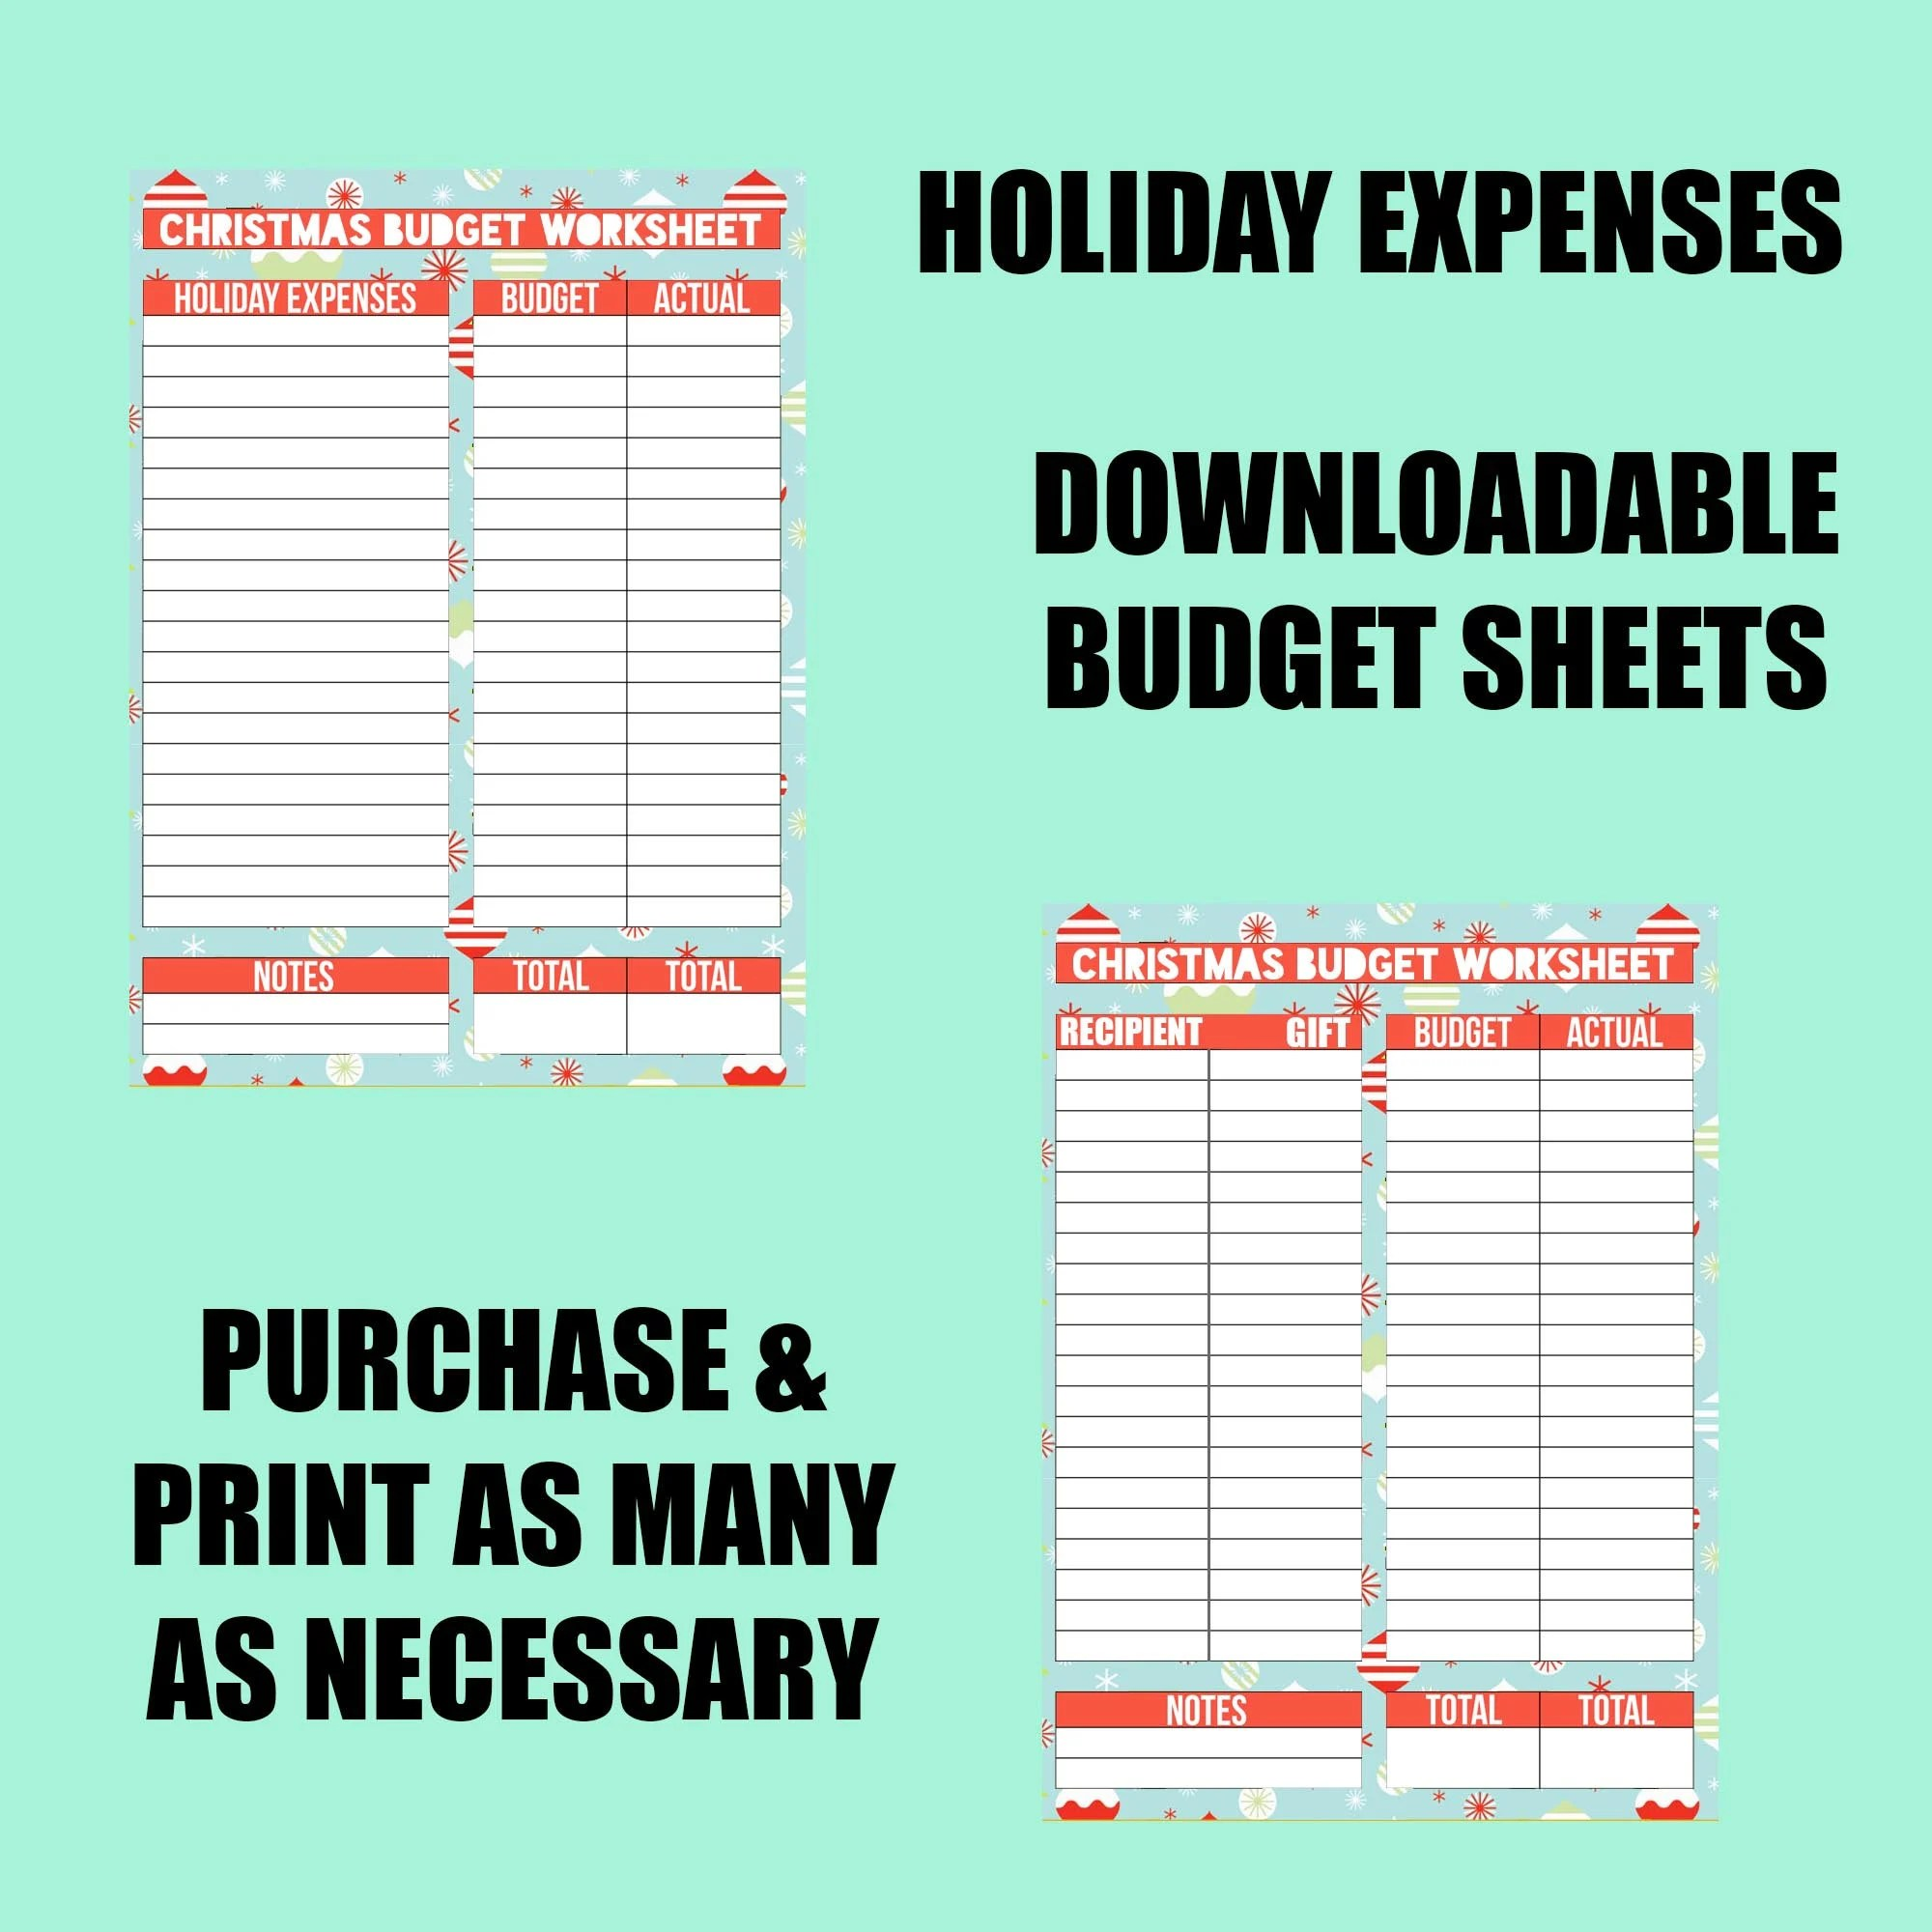 Holiday Budget Expenses Worksheet